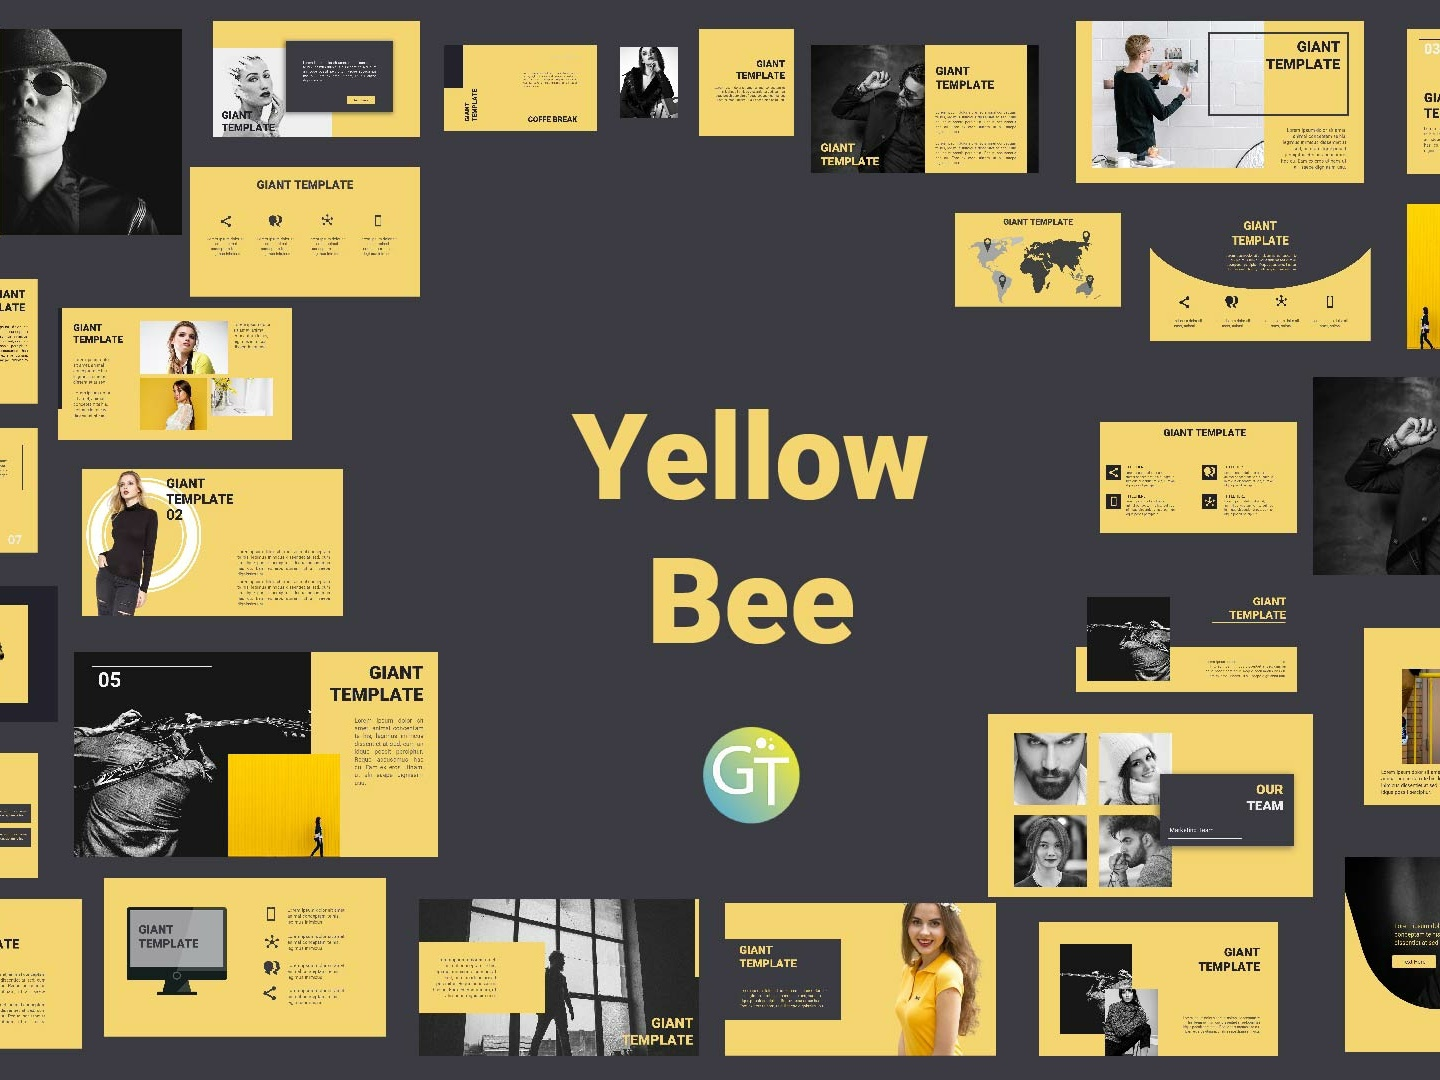 Yellowbee Free Powerpoint Template Free Download By Giant